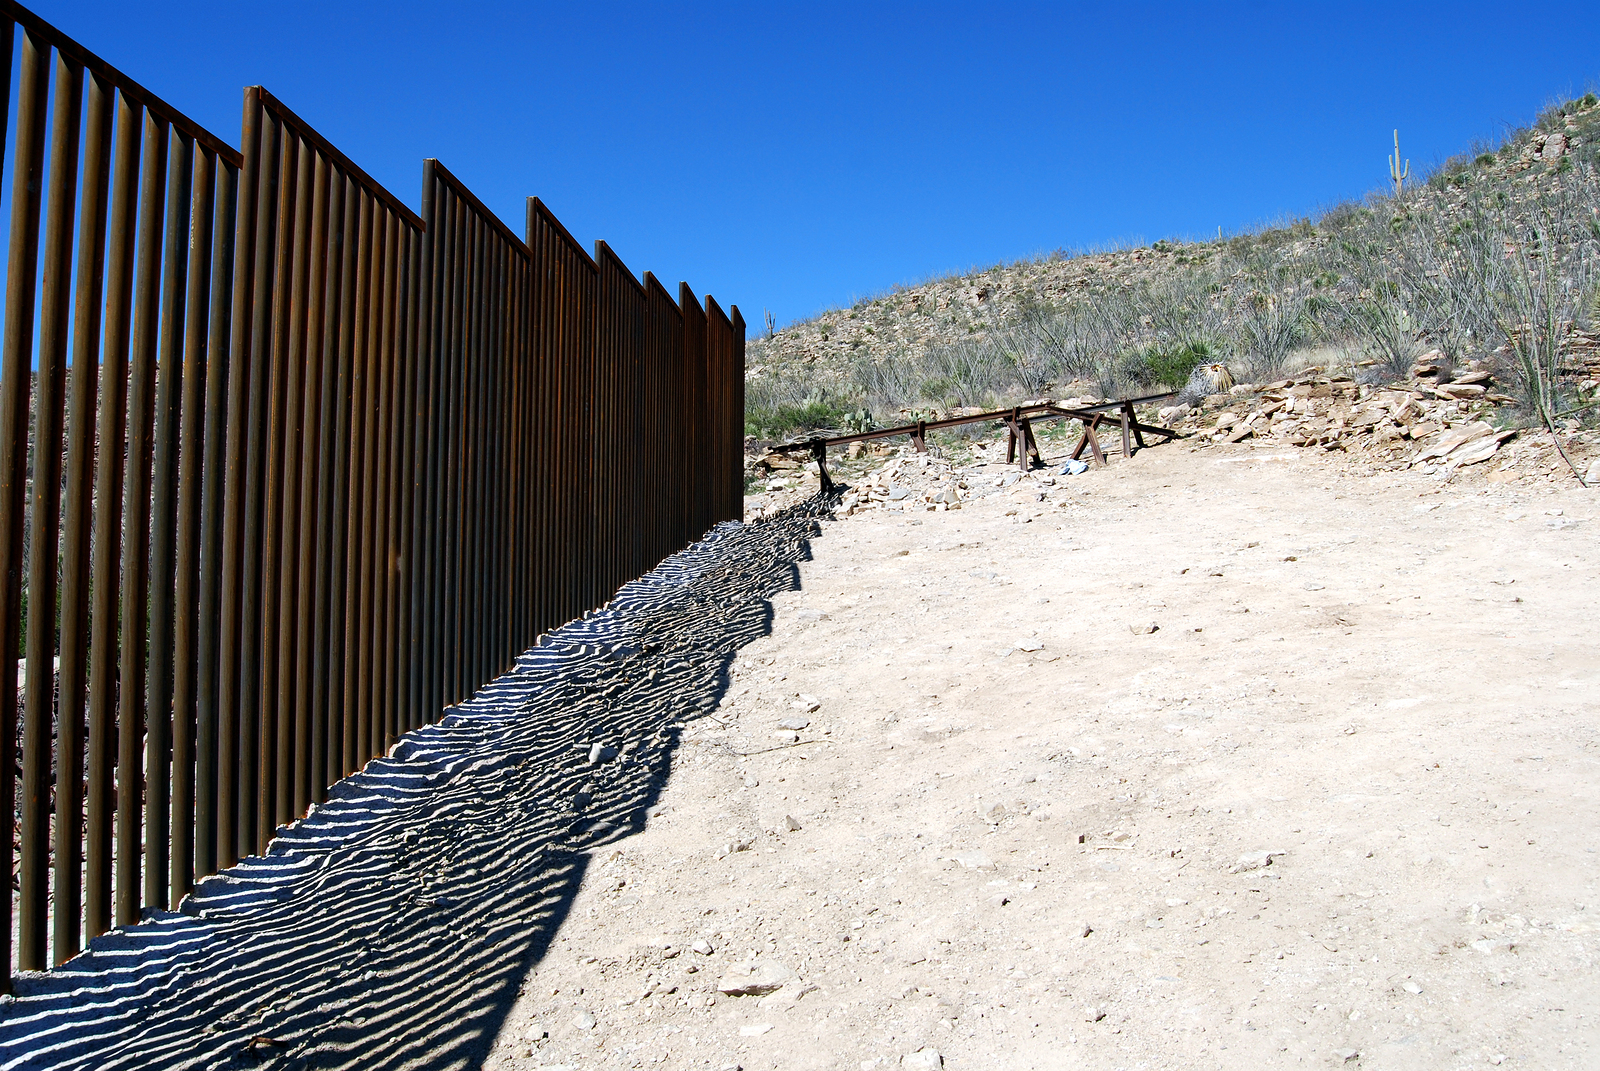 End of border fence between the US and Mexico